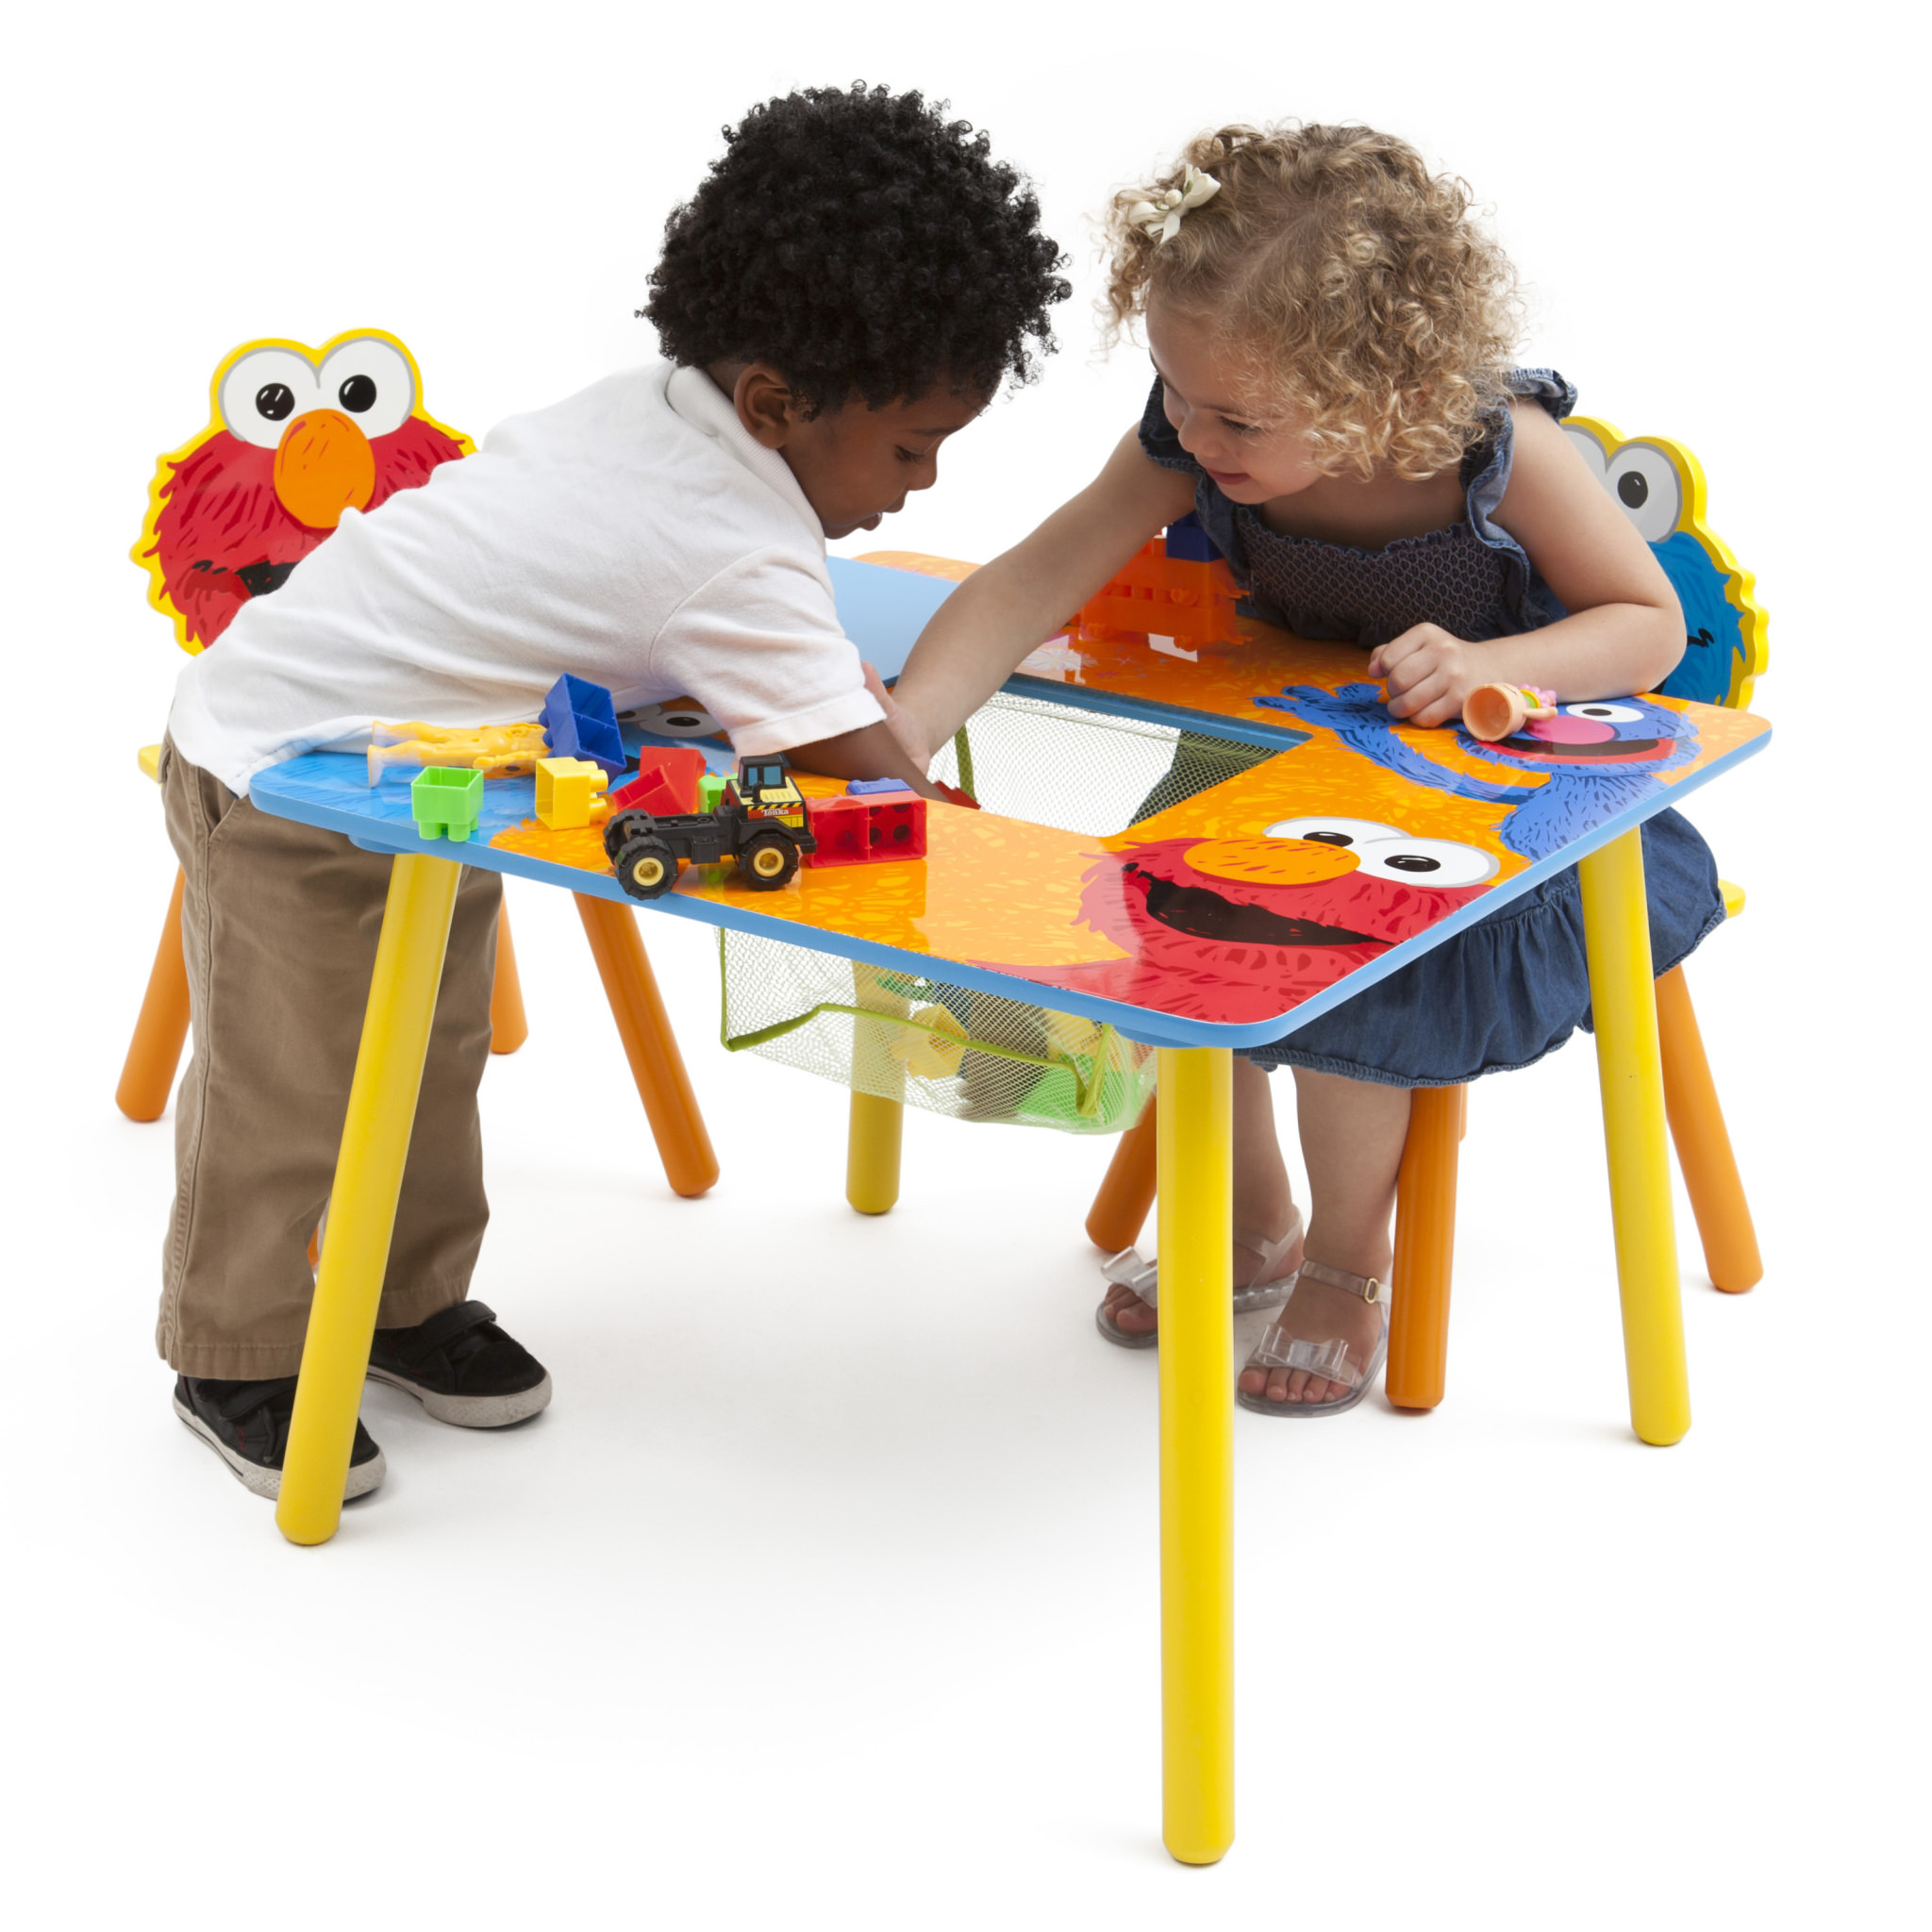 Sesame Street Wood Kids Storage Table And Chairs Set By